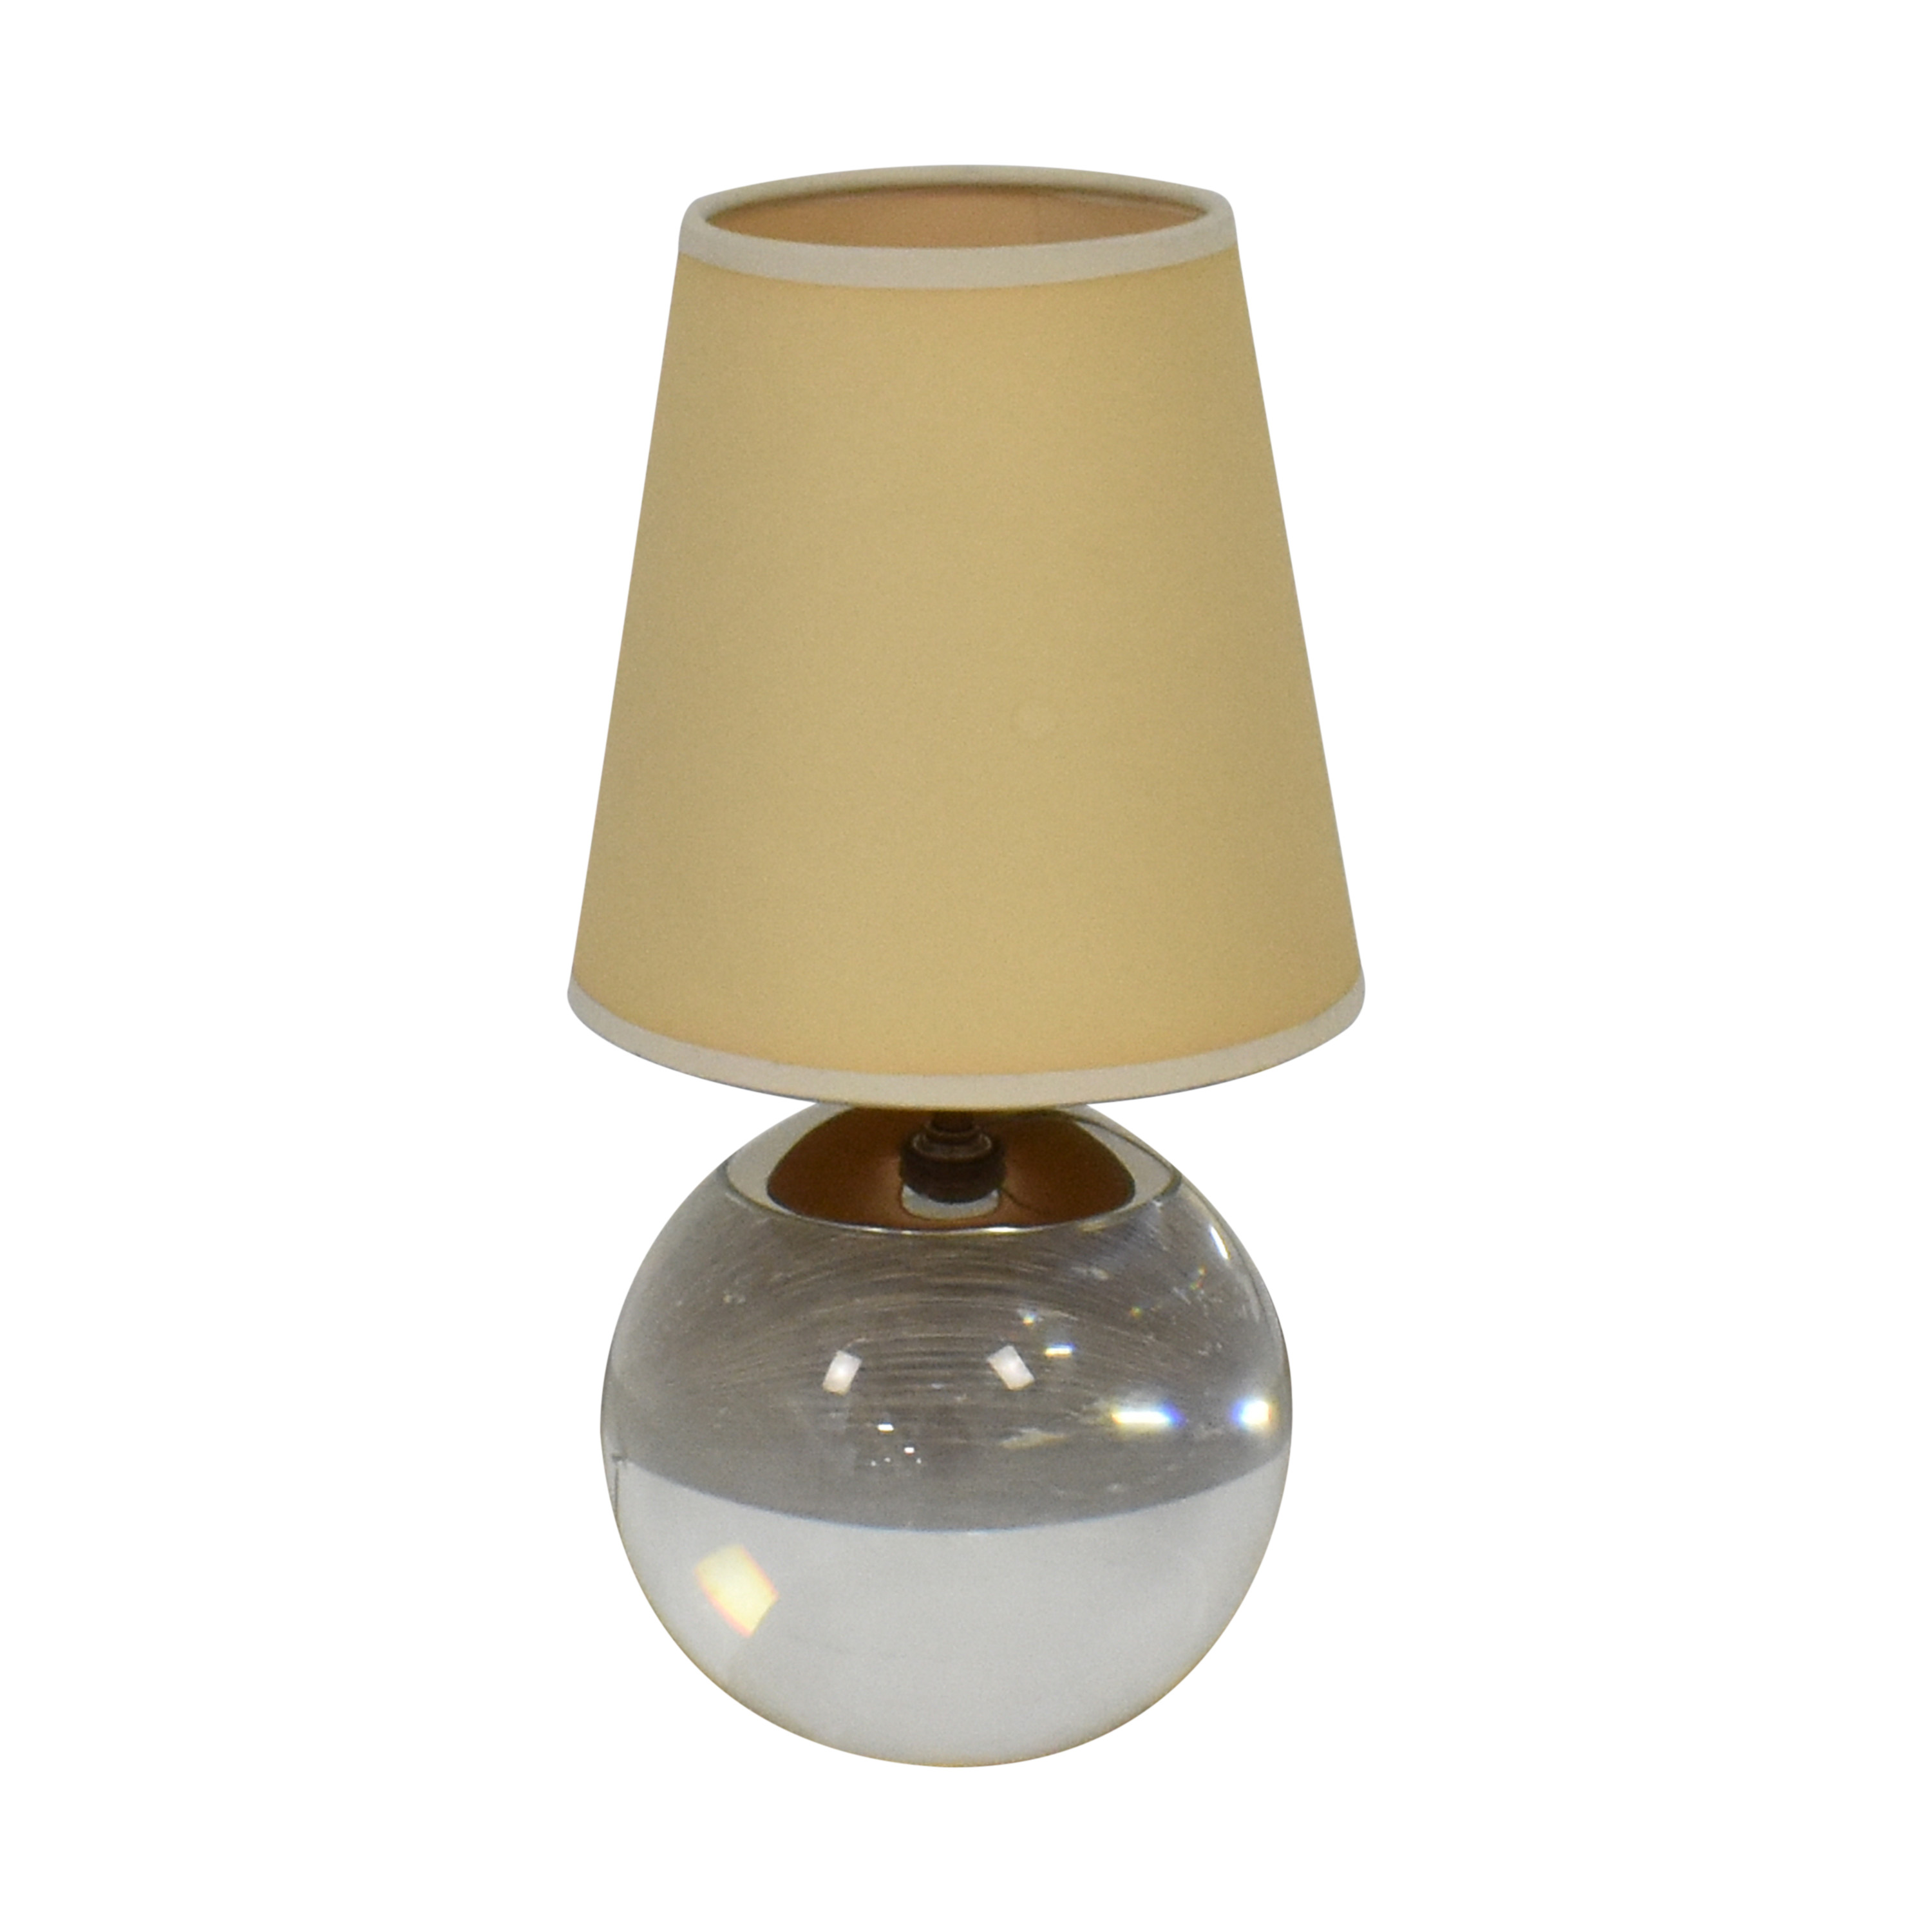 Williams Sonoma Williams Sonoma Round Base Table Lamp nj